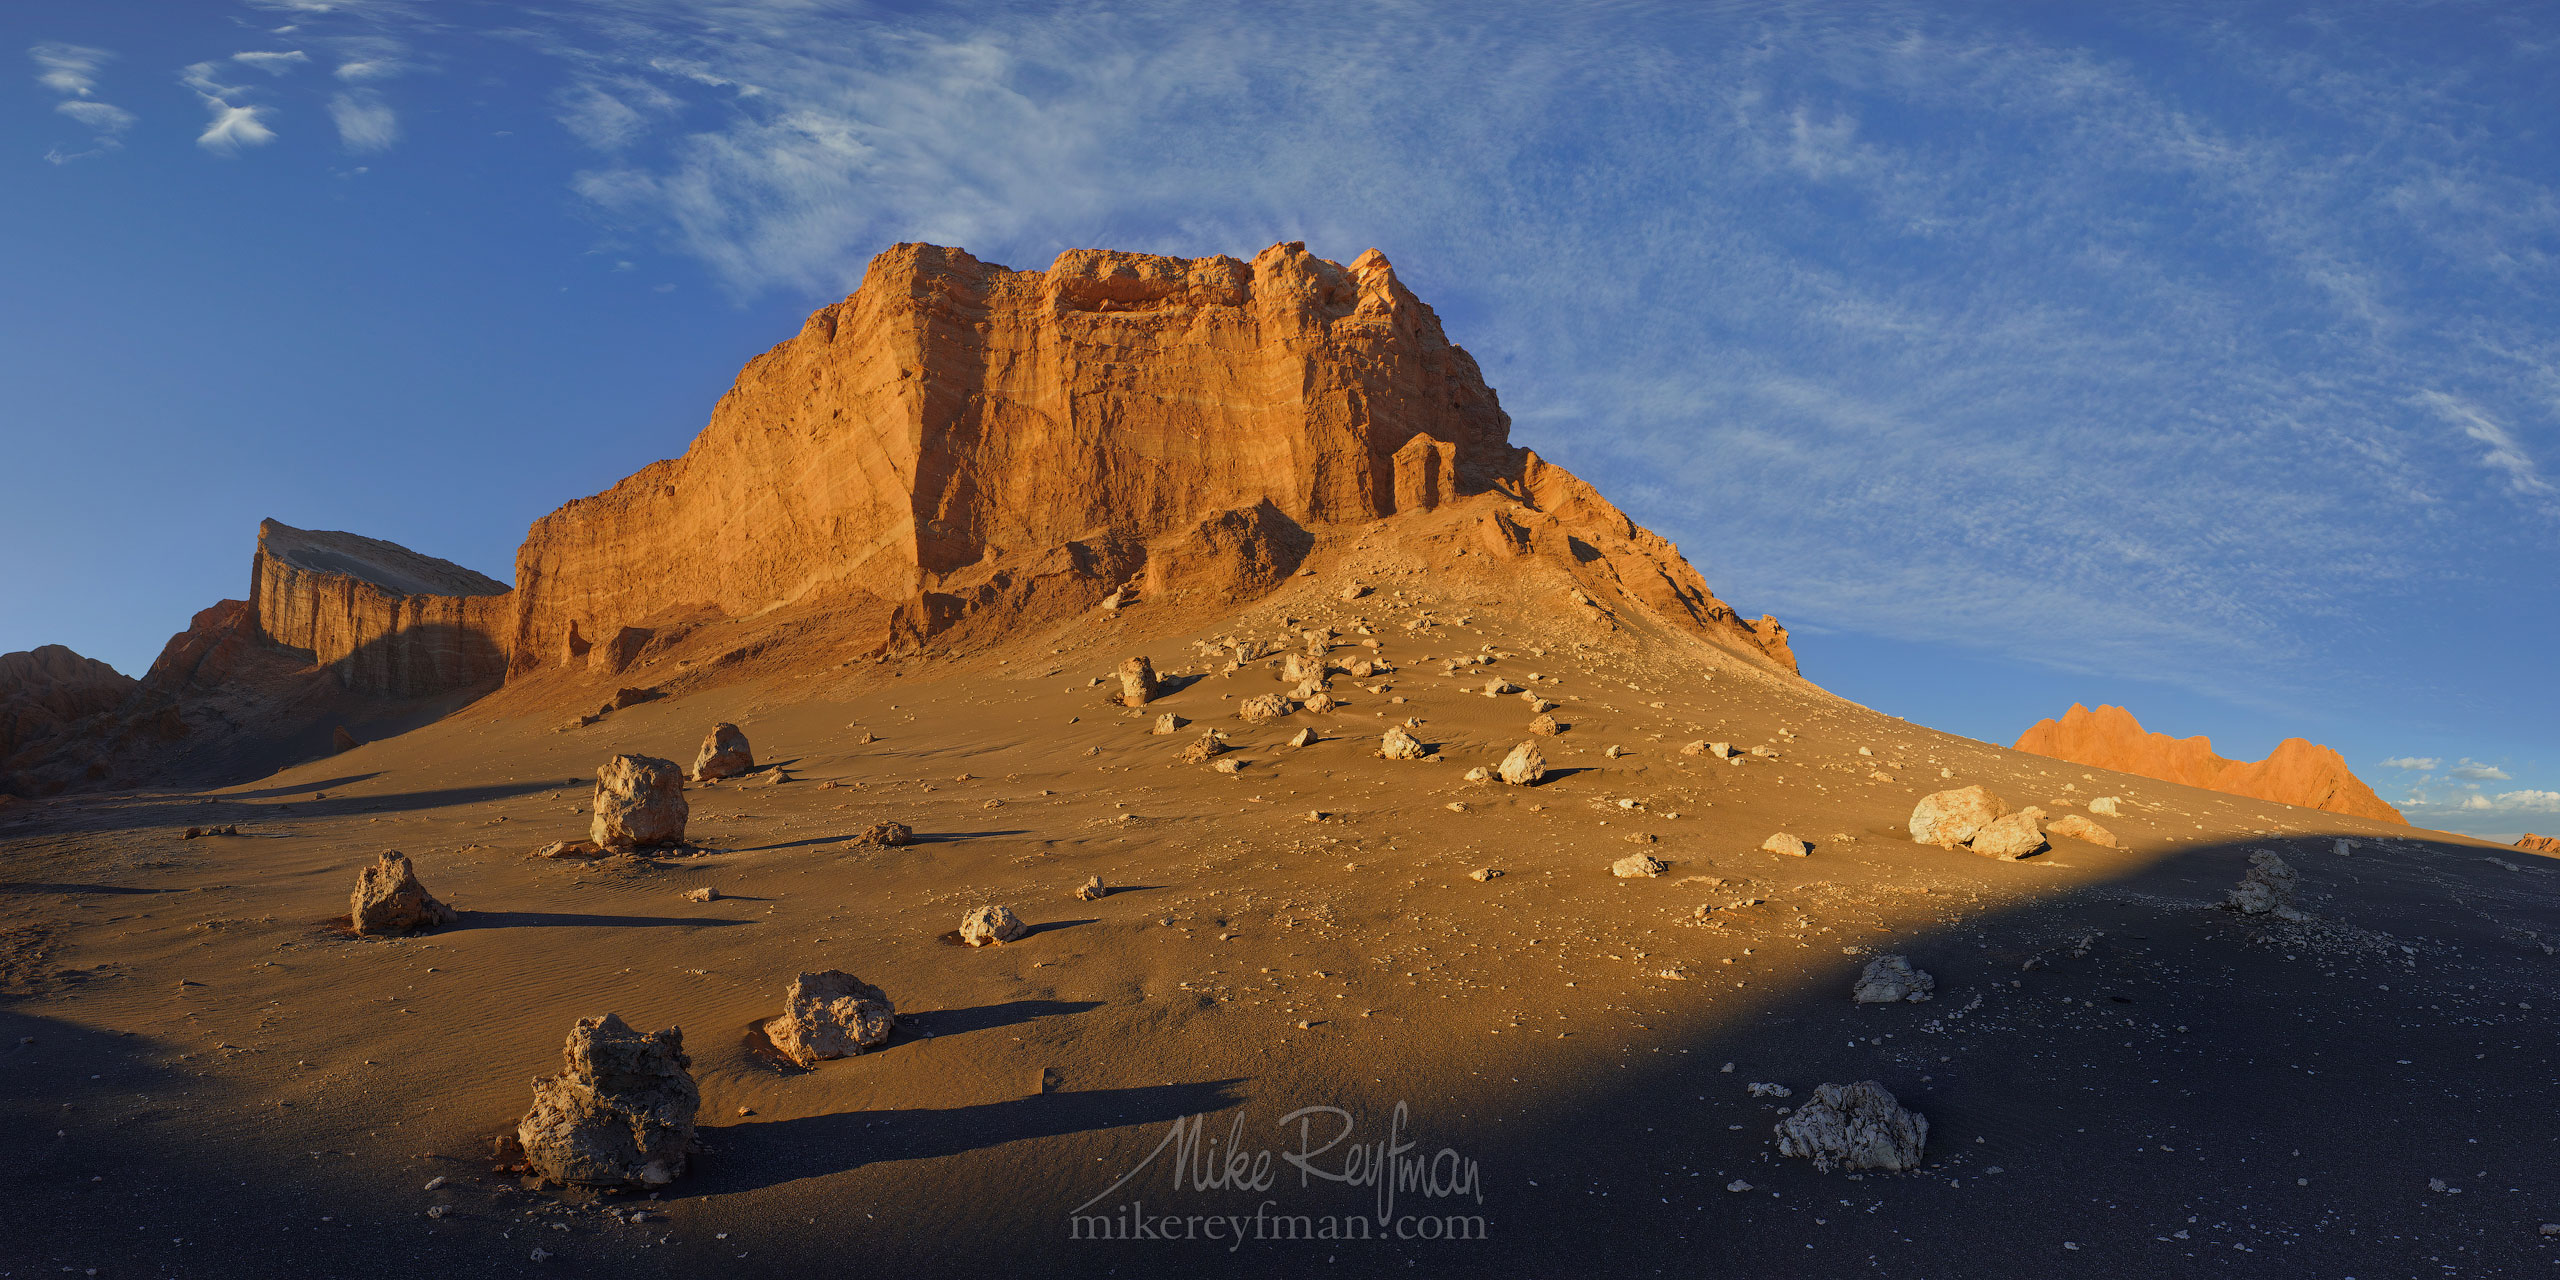 AA1-Q3X0148_Pano_1x2 - Atacama and Altiplano. The Driest Desert and The High Plain - Mike Reyfman Photography